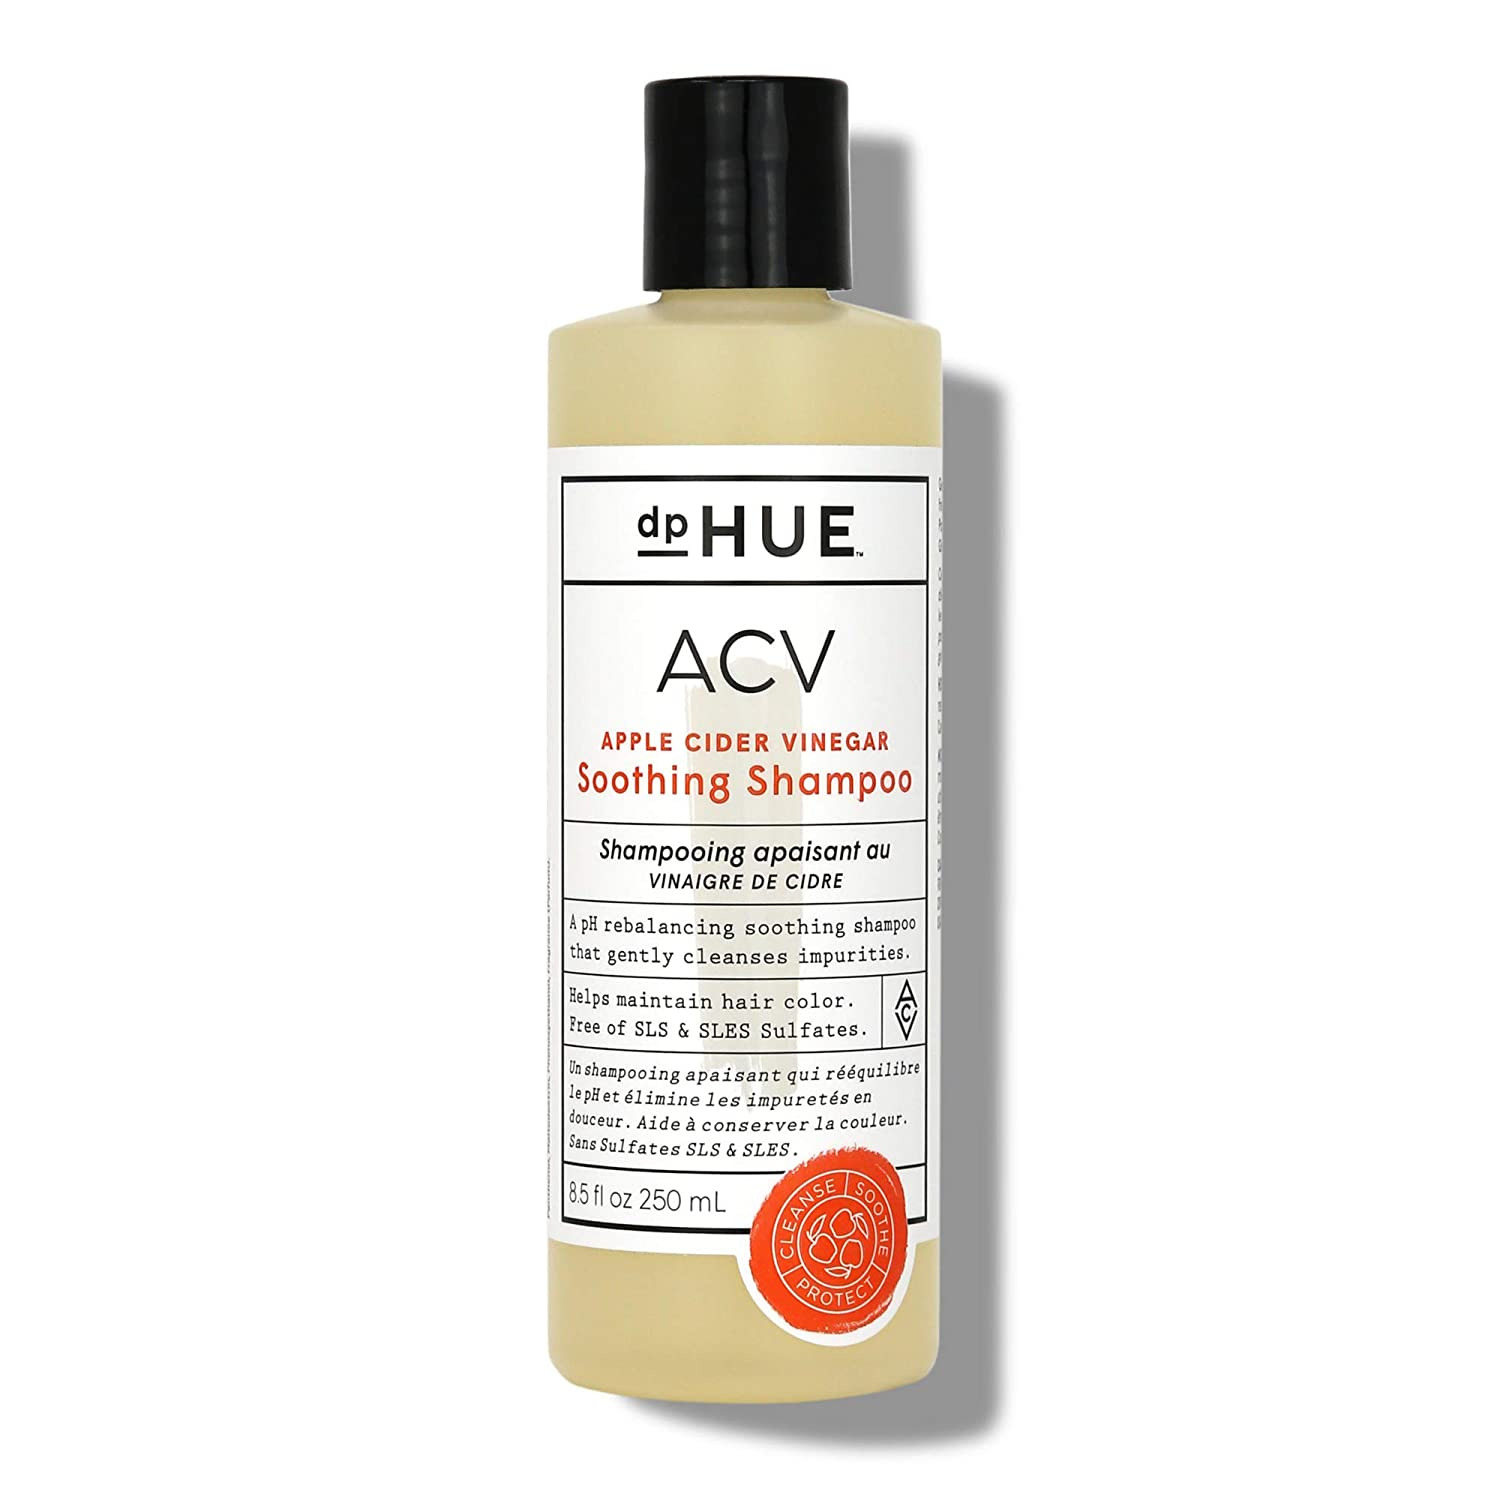 dpHUE ACV Soothing Shampoo, 8.5 oz - Sulfate Free Dry Scalp Shampoo For Color Treated Hair With Apple Cider Vinegar, Ginger Root, Lavender and Aloe